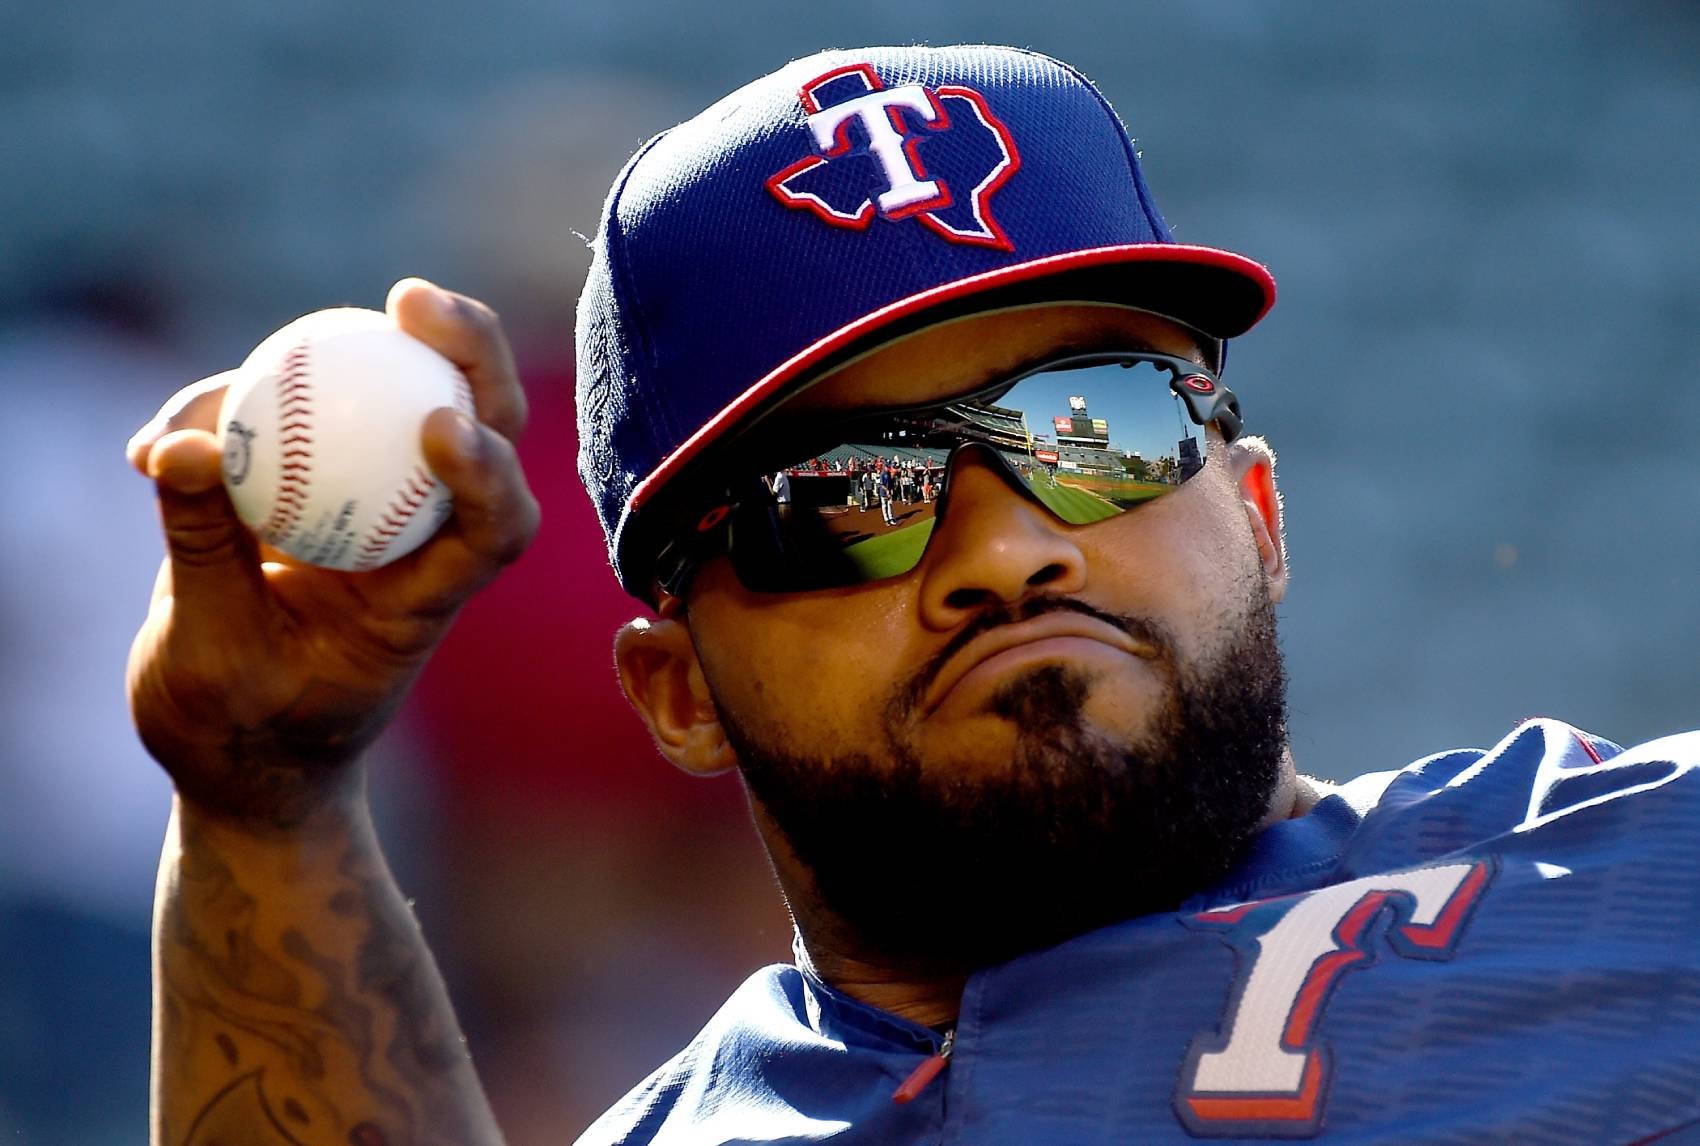 Prince Fielder May Earn MLB's Biggest Paycheck in 2020 — and He Hasn't Played Since 2016